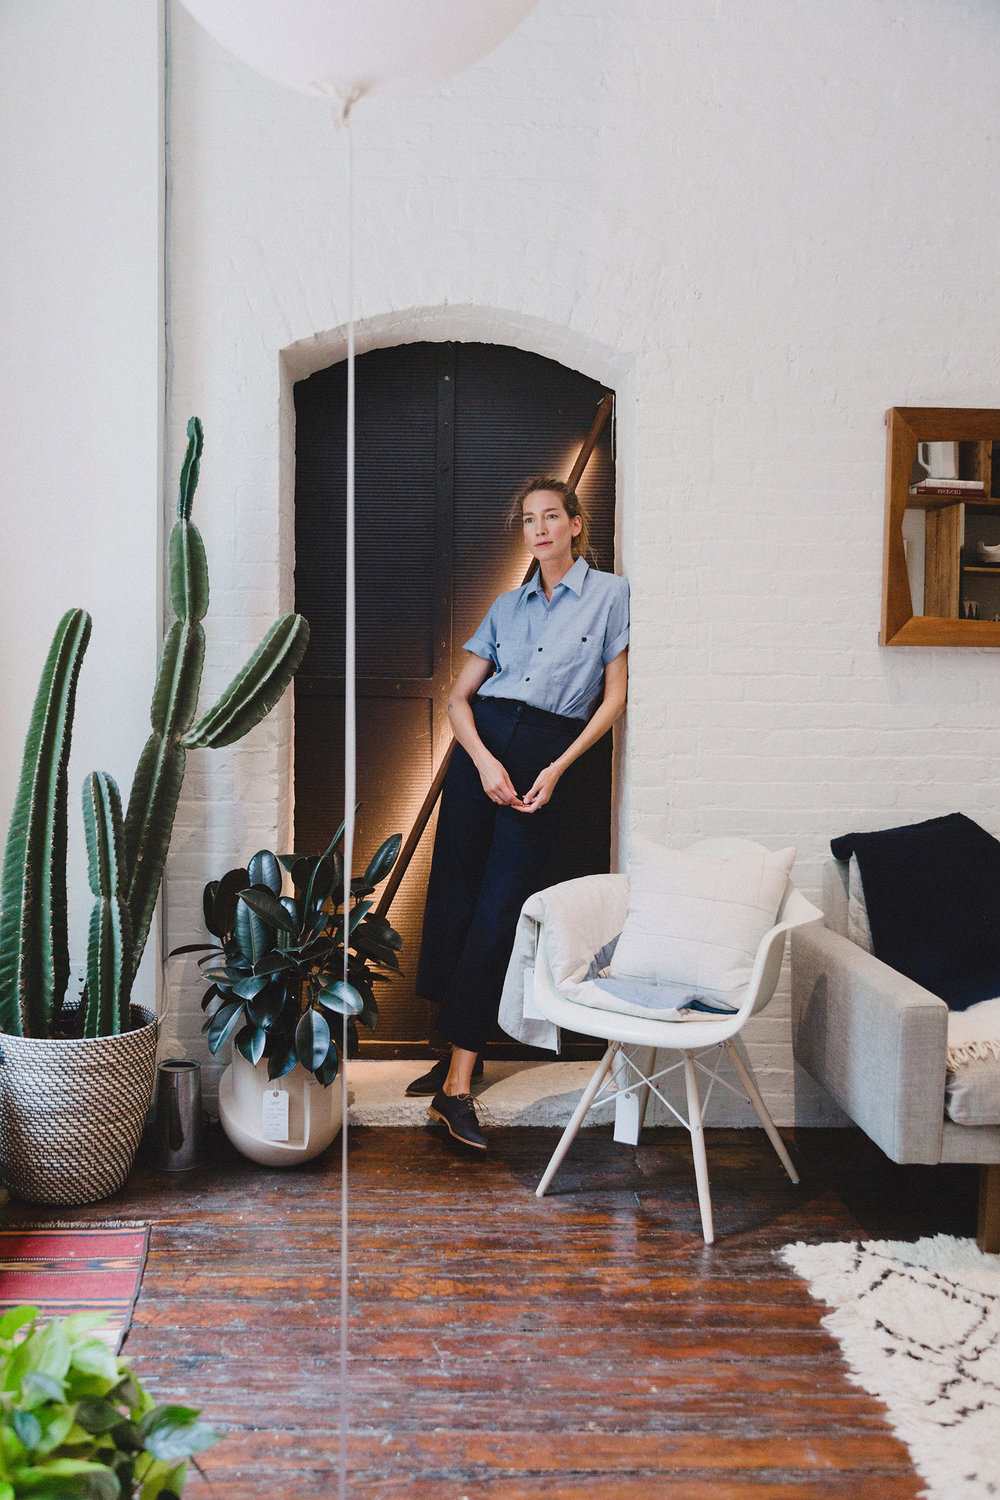 Caroline Ventura, Co-Owner of Calliope and Designer at BRVTVS photographed by Bridget Badore for Coclico